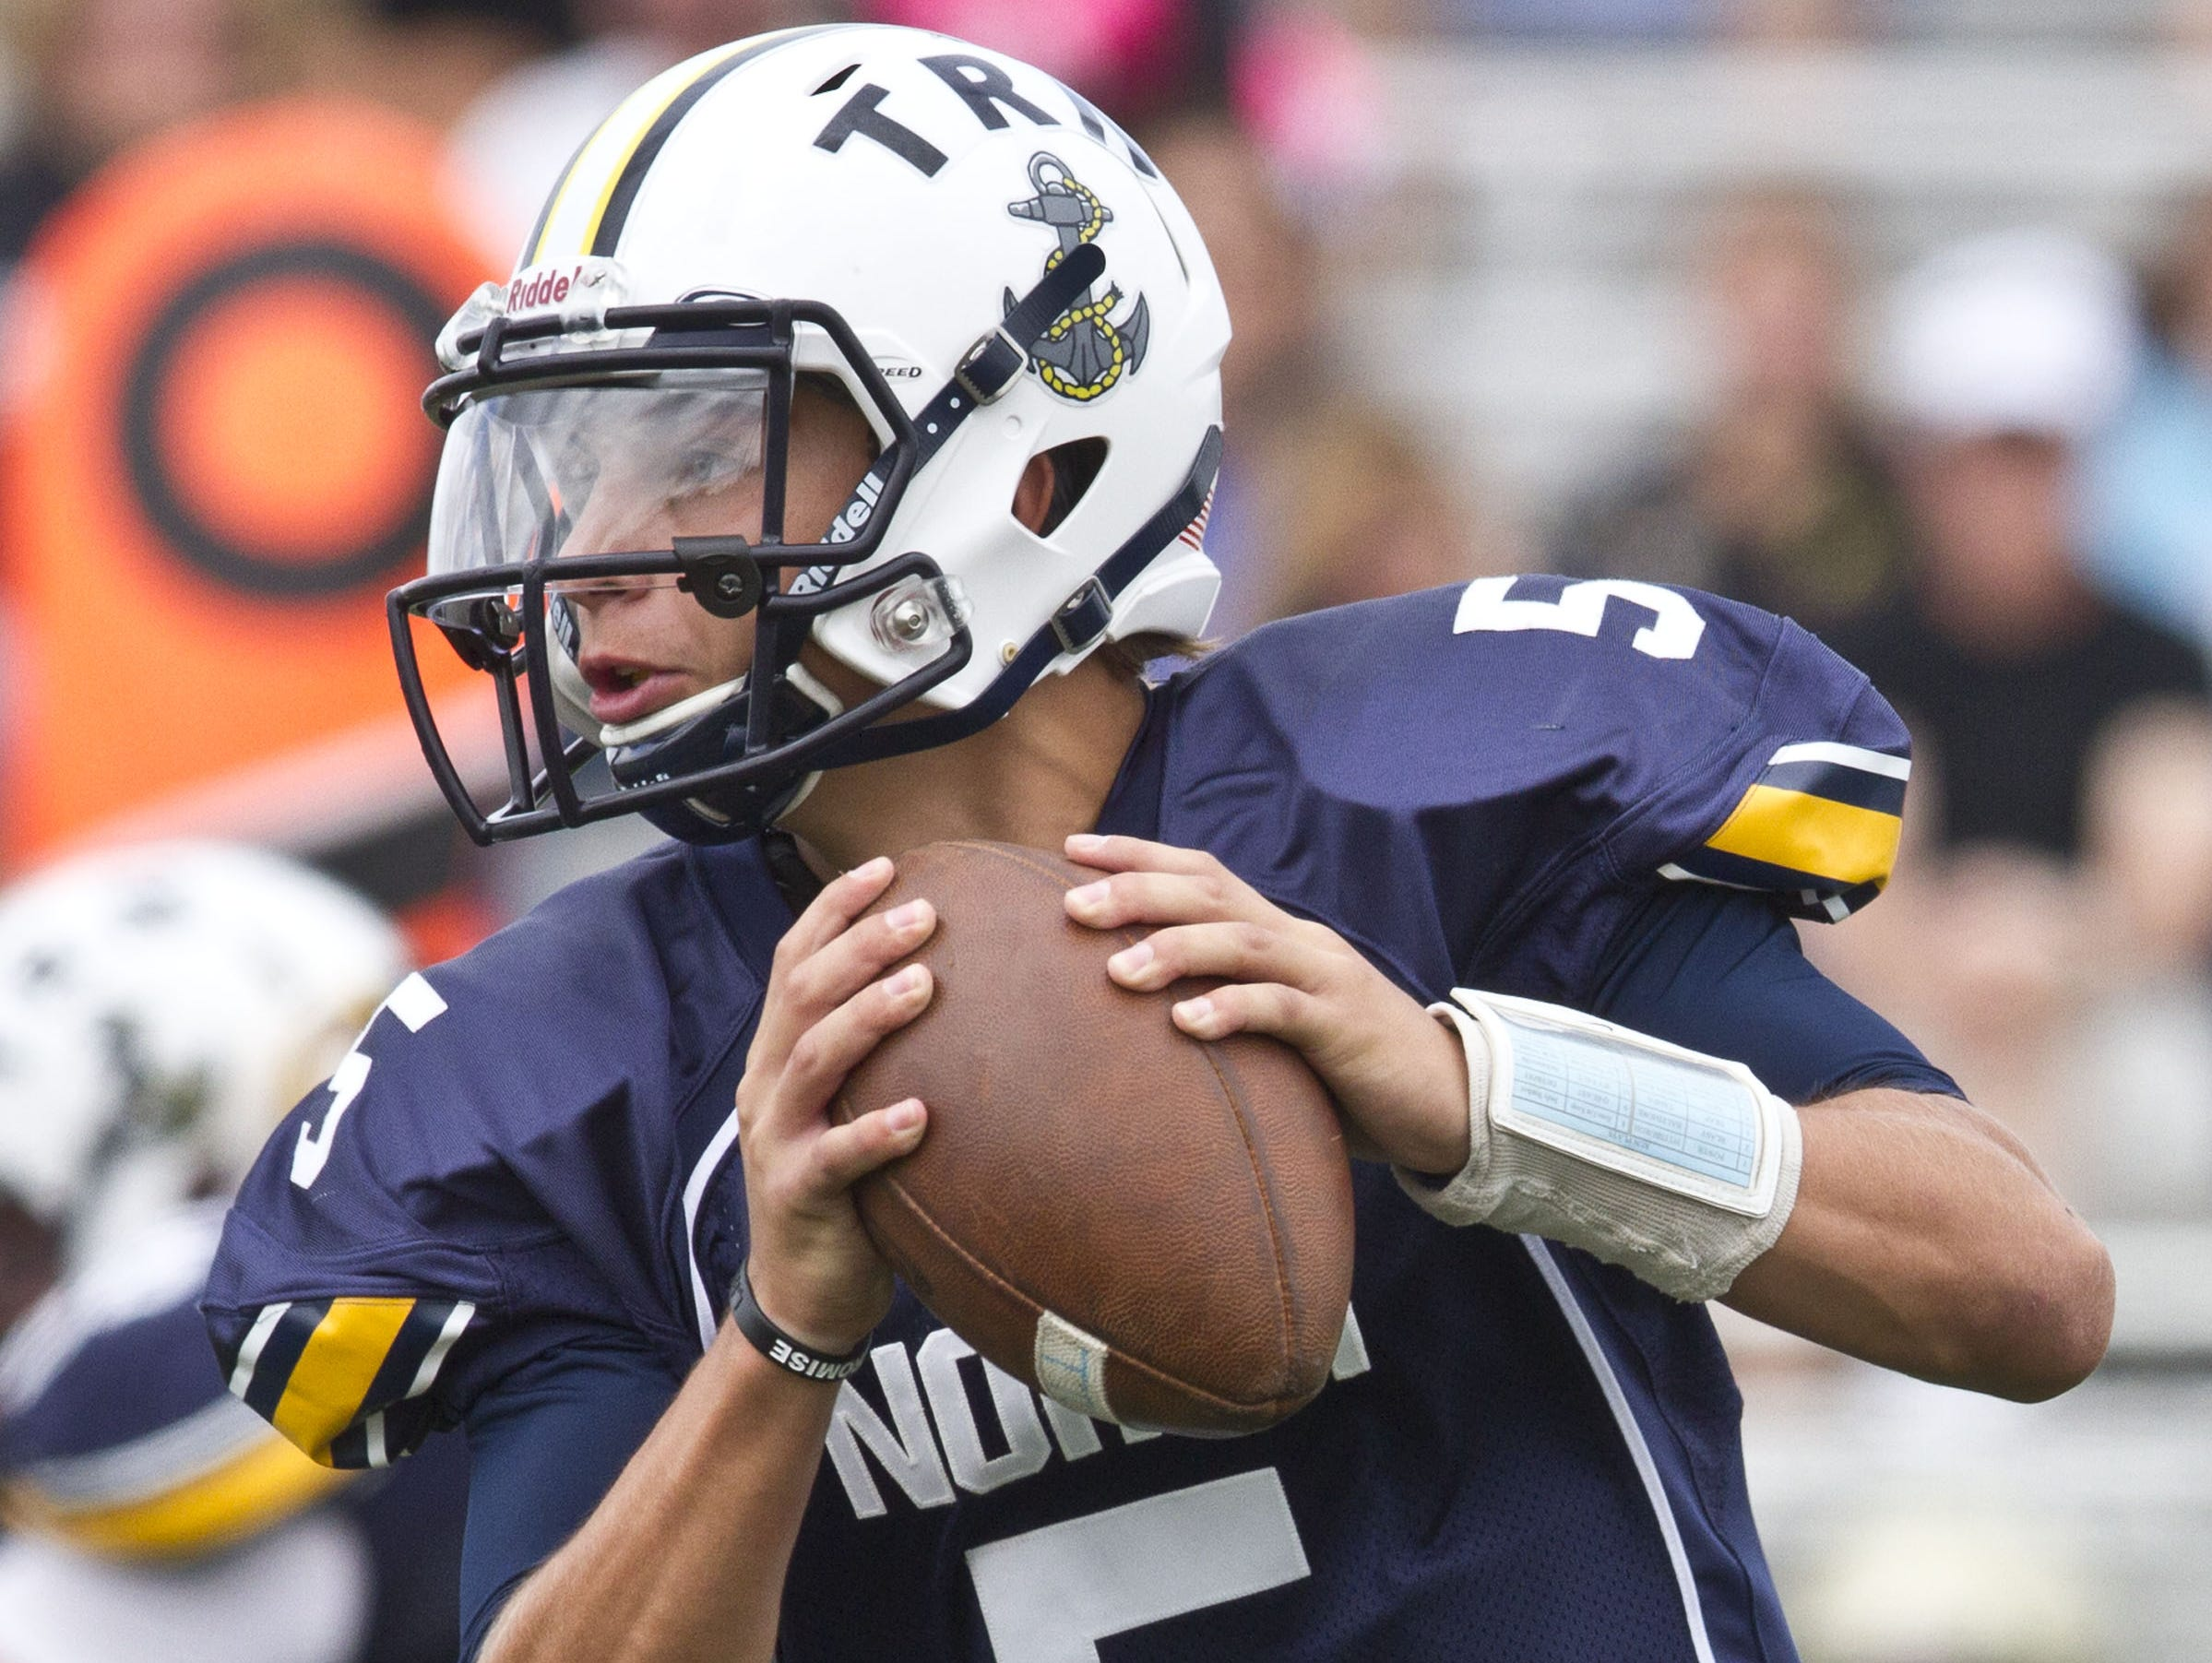 Toms River North quarterback Mike Husni looks to pass against Brick Memorial in the 2014 season. Toms River, NJ Saturday, September 20, 2014 Doug Hood/Staff Photographer